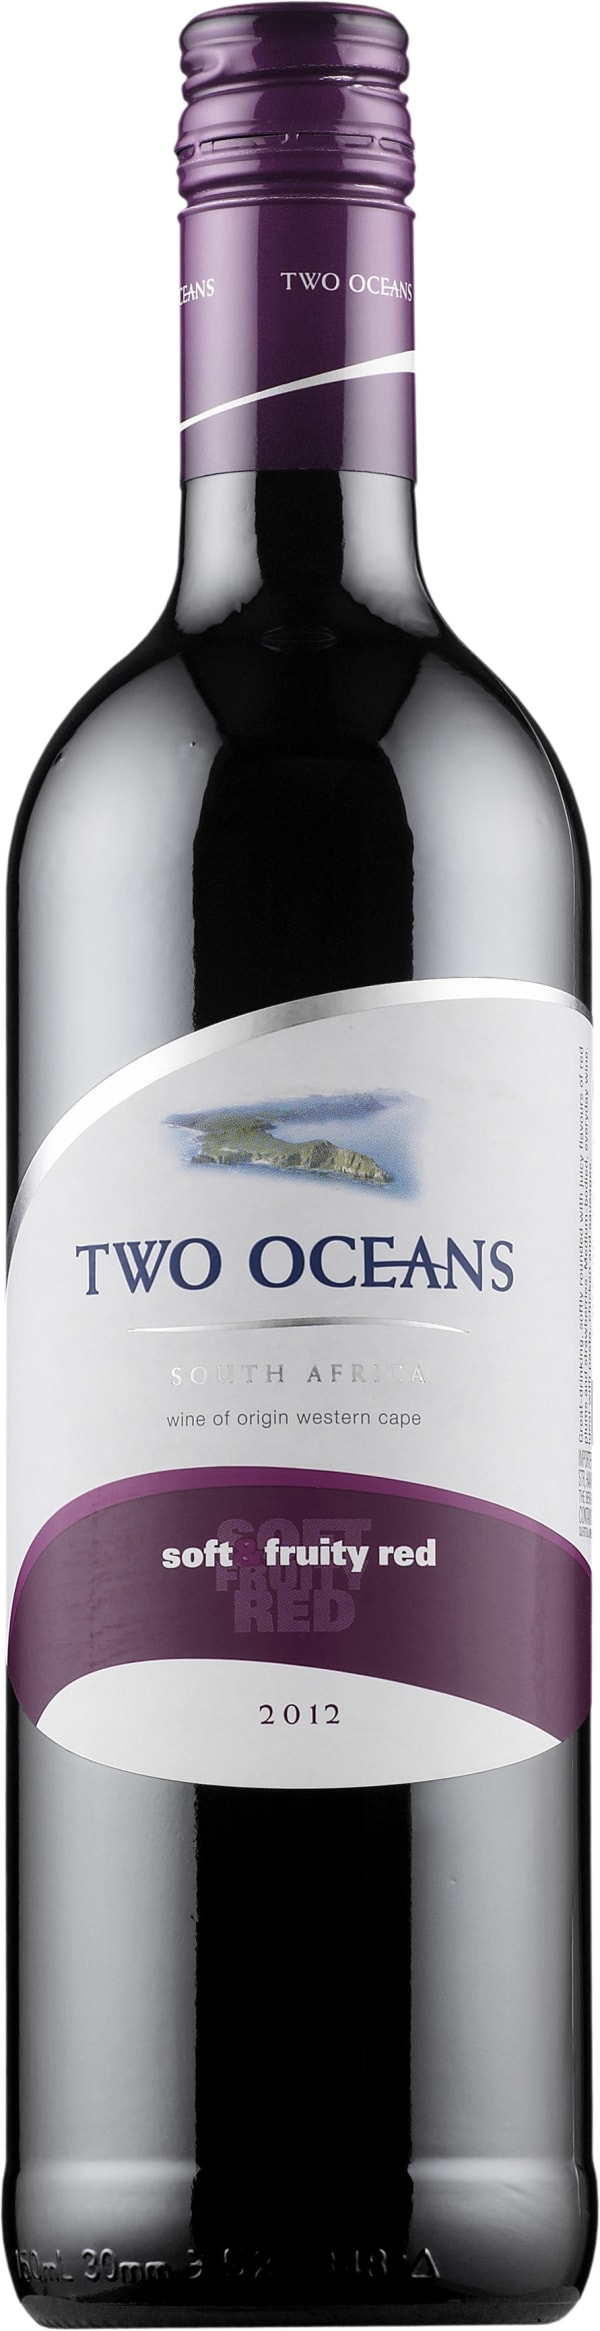 Two Oceans Soft & Fruity Red 2016